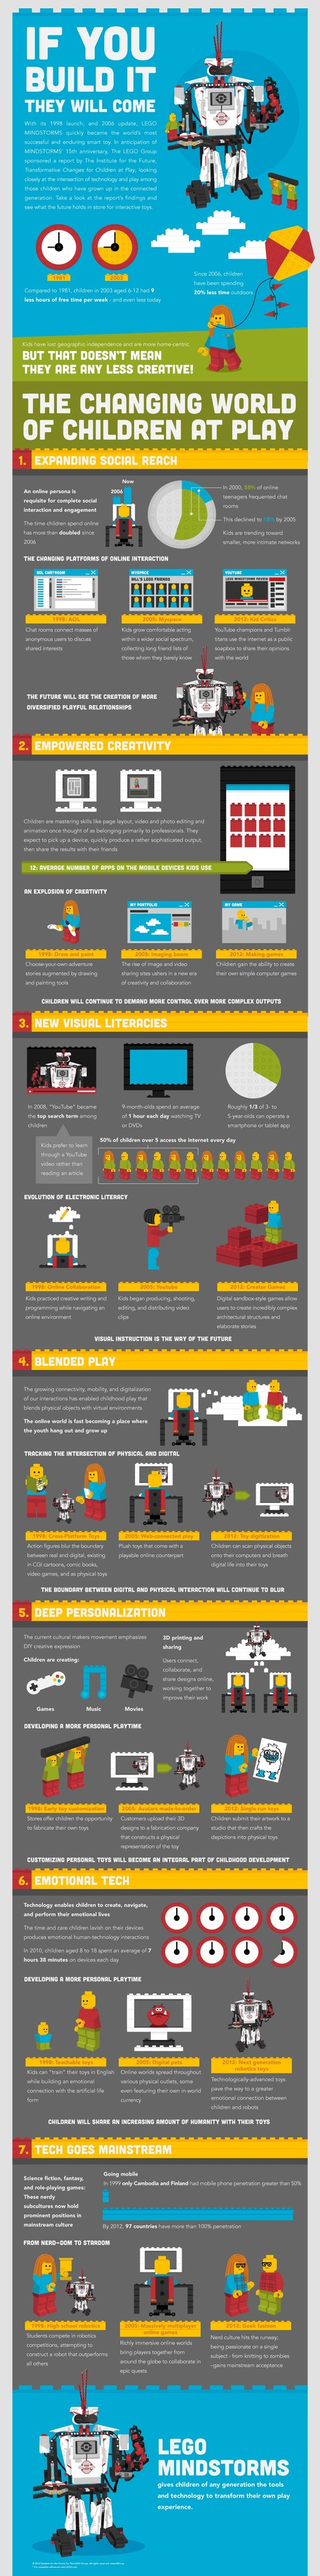 Let Children's Play (with Technology) Be Their Work in Education [Infographic] | 21st Century Tools for Teaching-People and Learners | Scoop.it